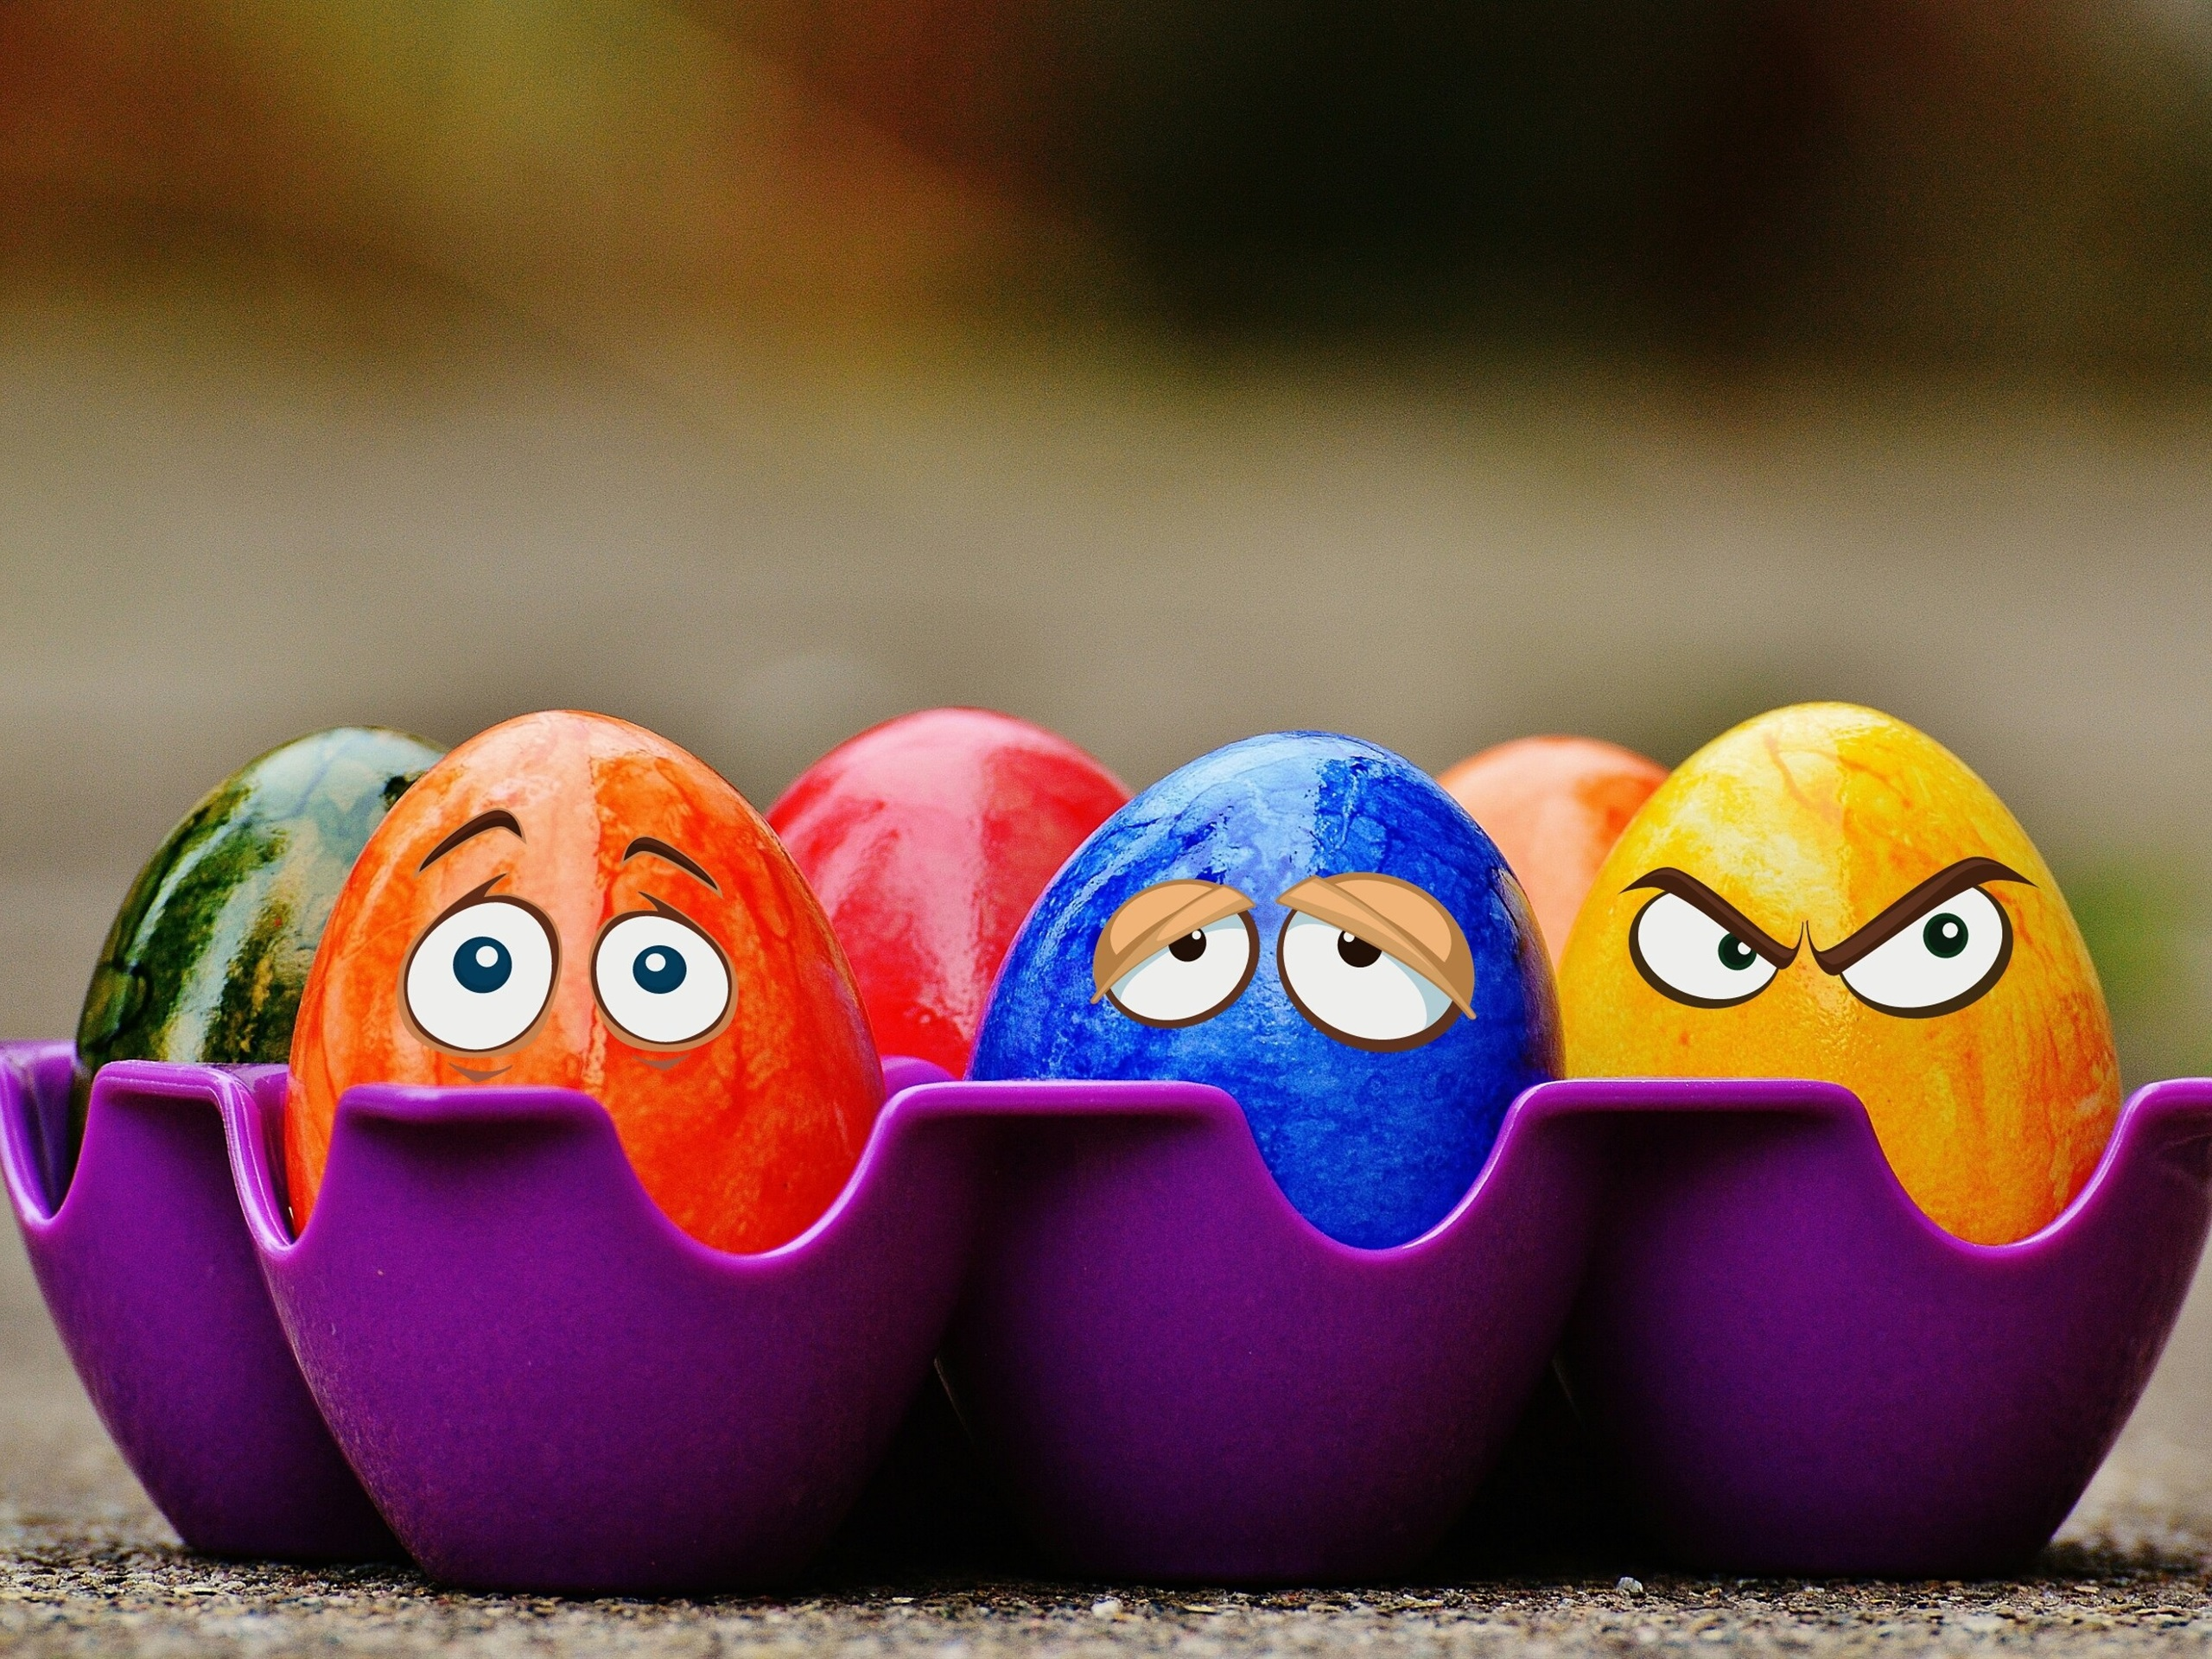 creative eggs wallpaper 73931